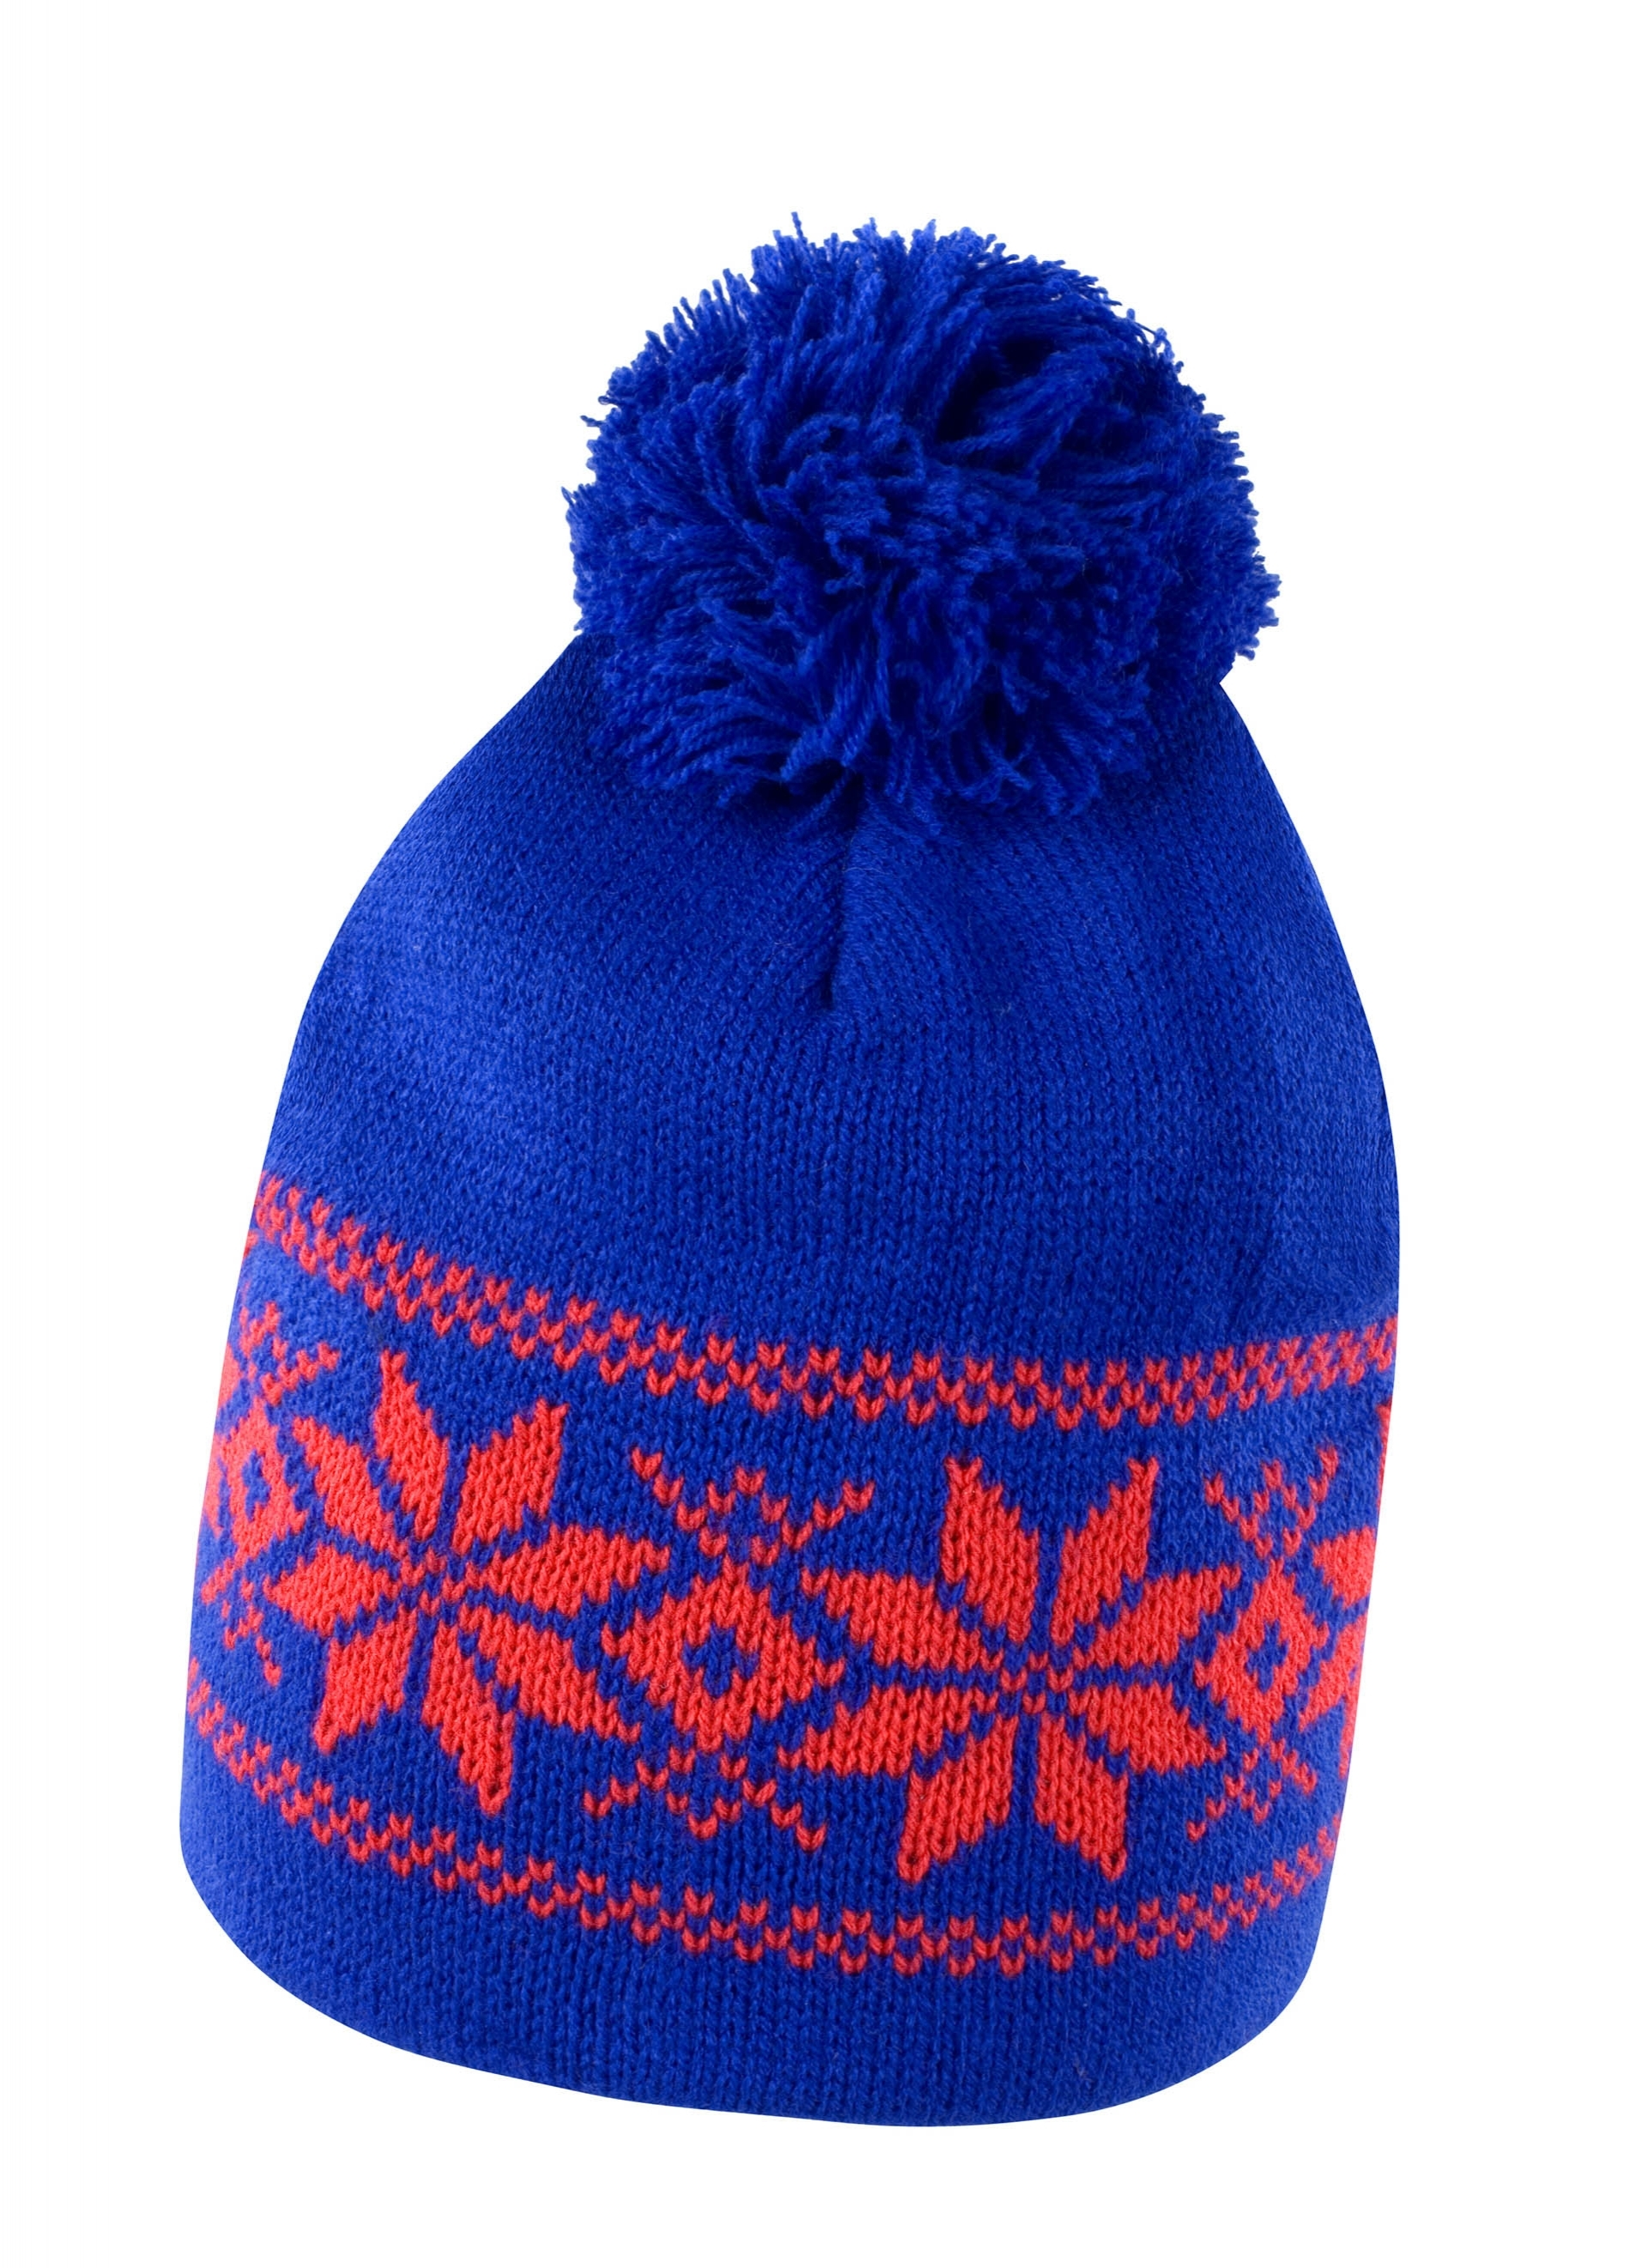 BONNET FAIR ISLES Royal Blue / Red Bleu